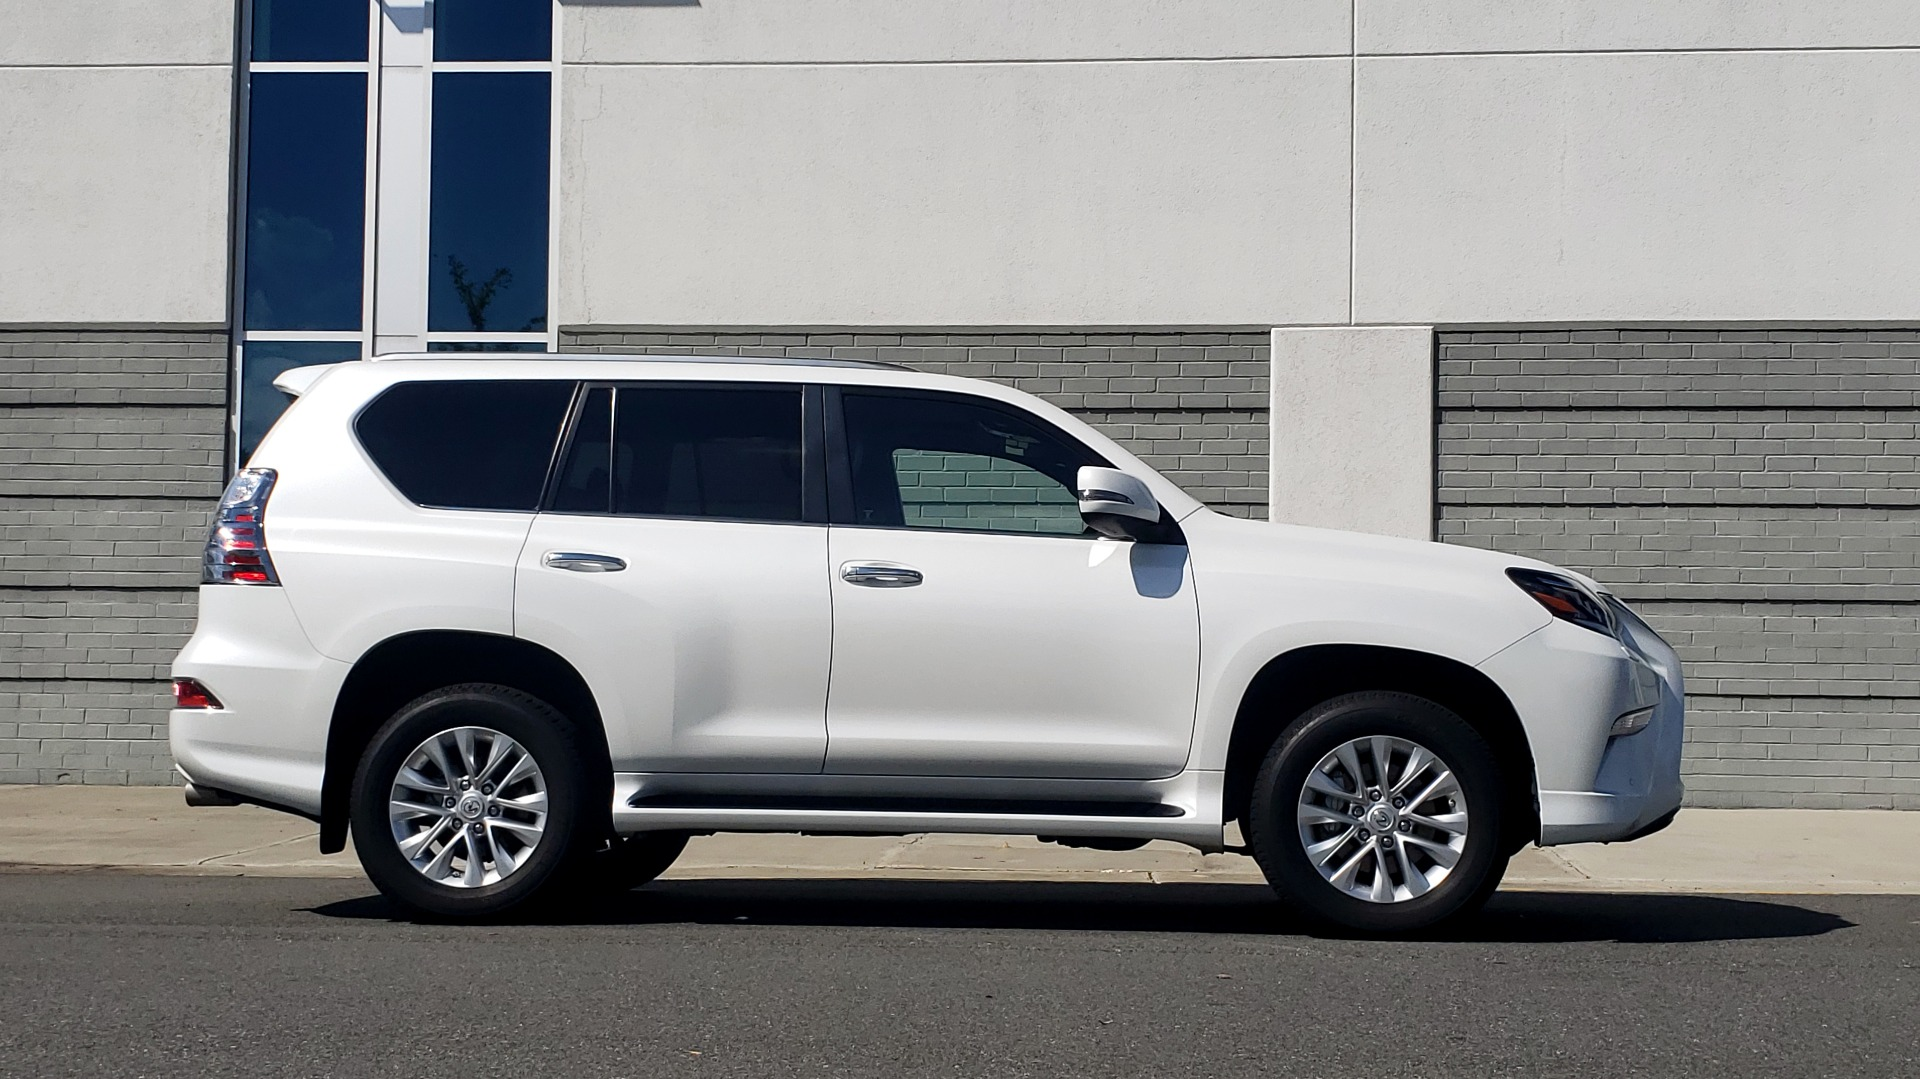 Used 2021 Lexus GX 460 PREMIUM / AWD / NAV / SUNROOF / 3-ROW / REARVIEW for sale Sold at Formula Imports in Charlotte NC 28227 9